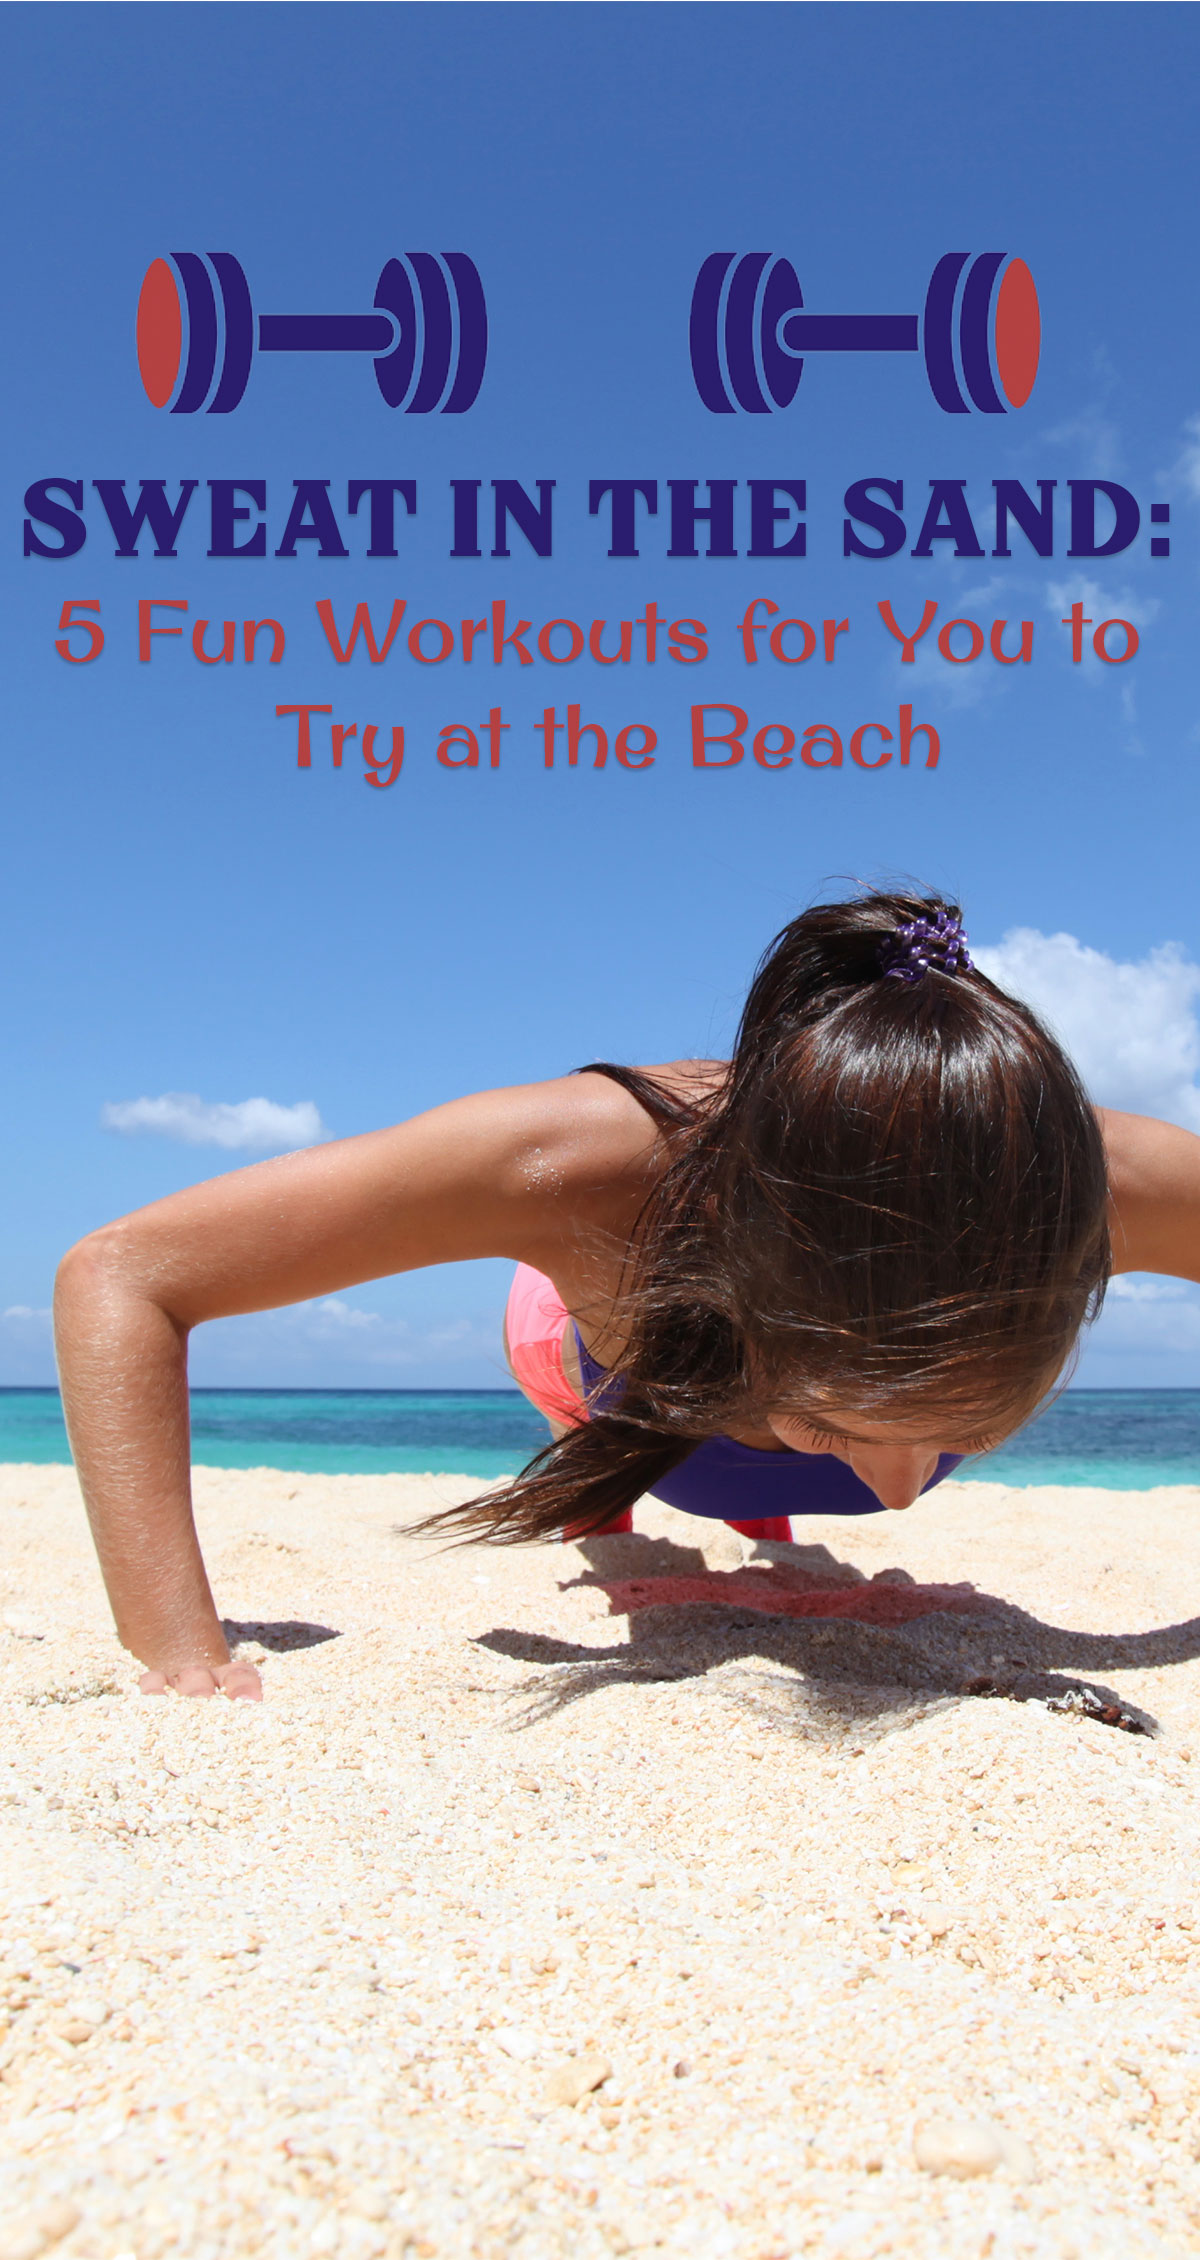 Sweat in the Sand: 5 Fun Workouts for You to Try at the Beach Pin